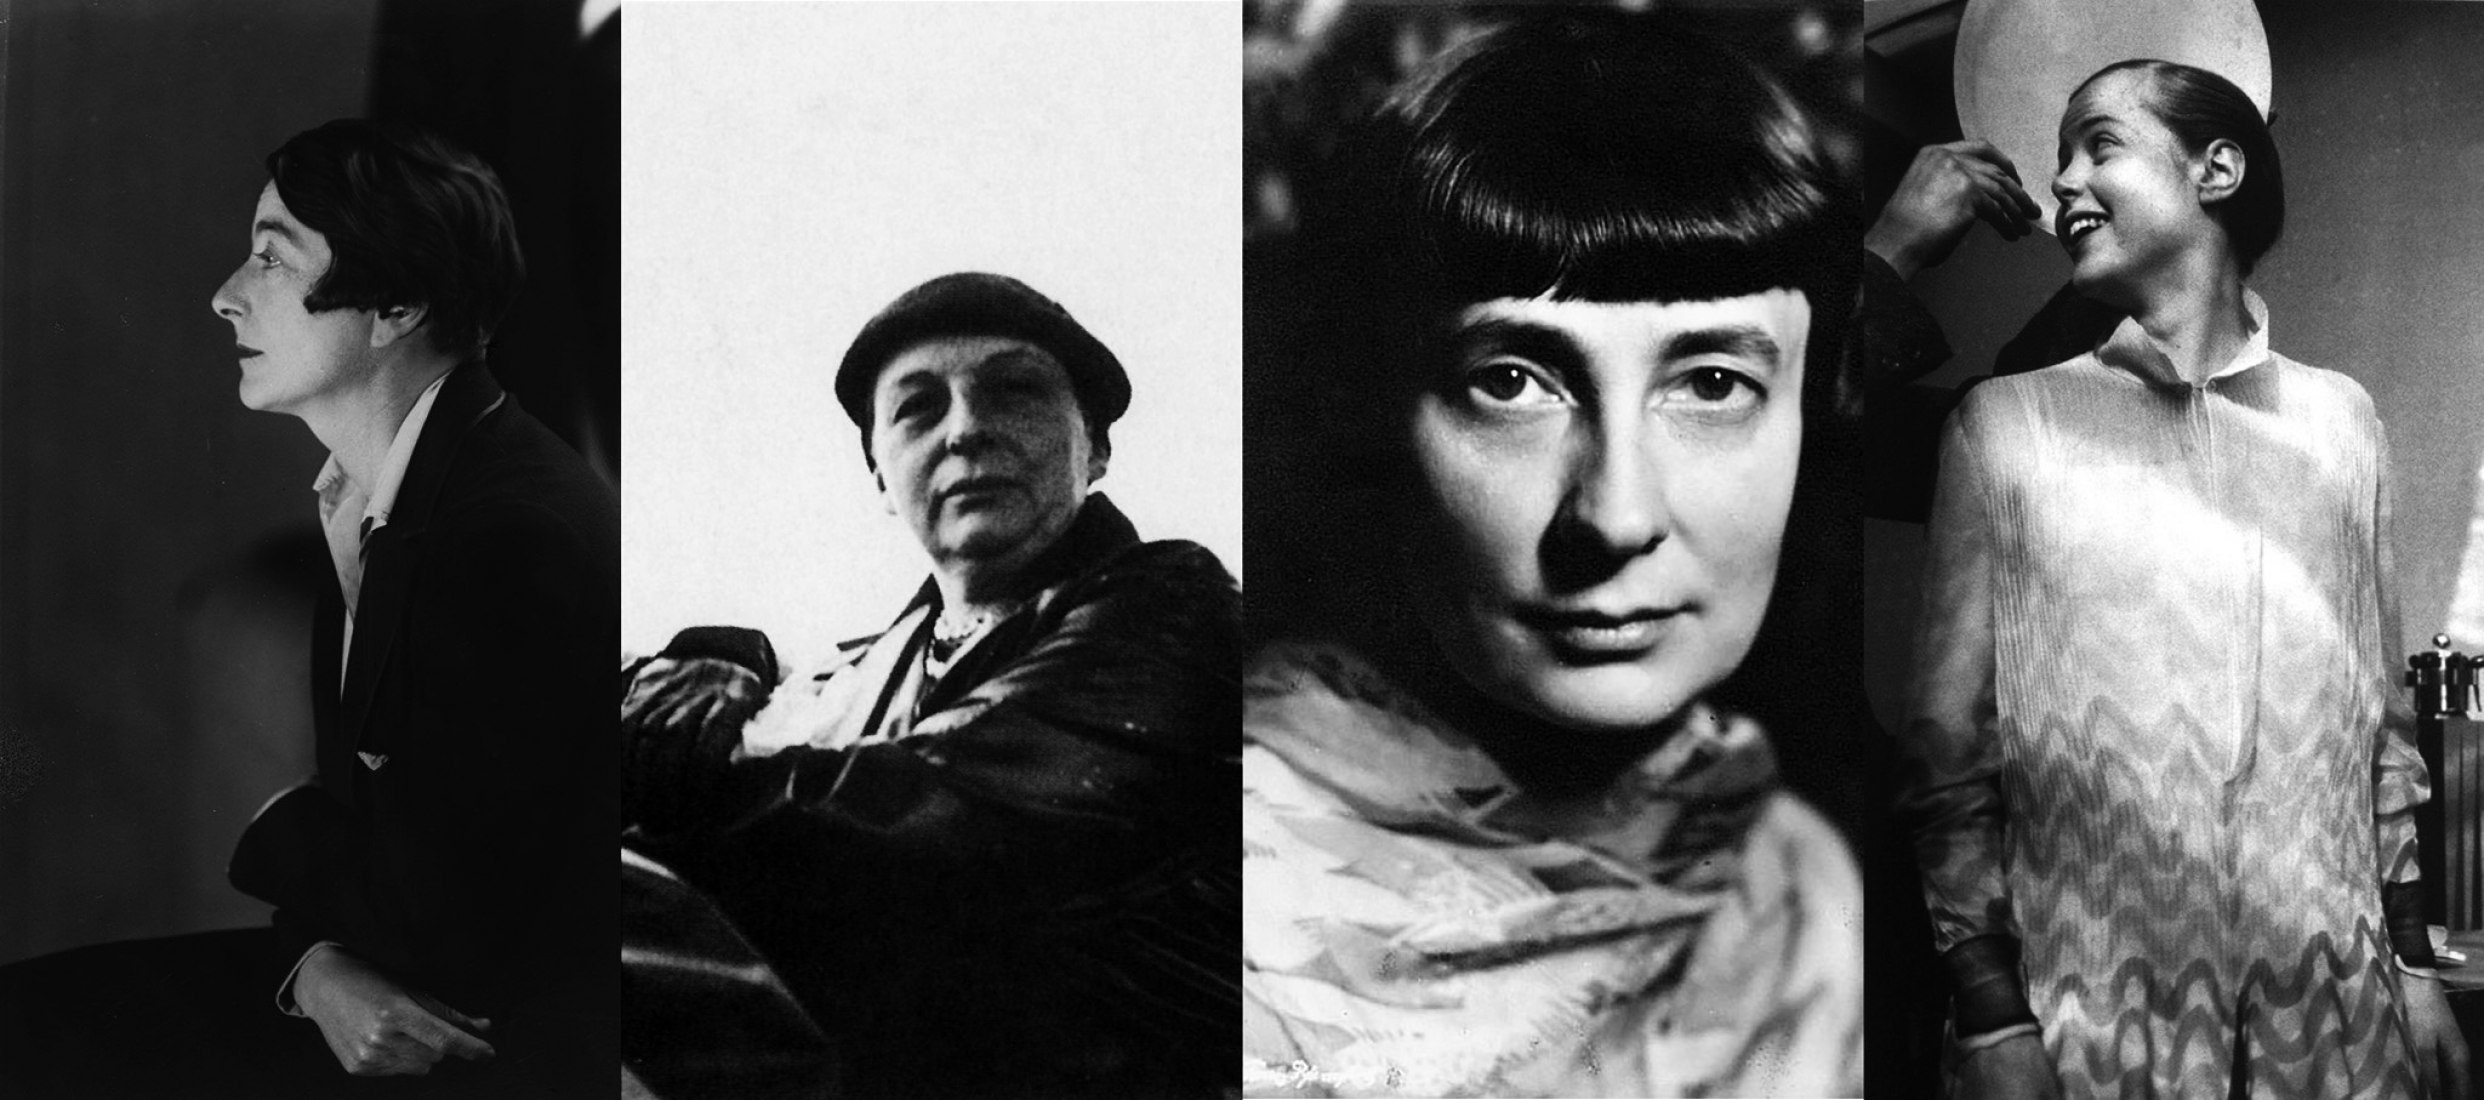 Eileen Gray (Enniscorthy, Ireland, 1878-Paris, 1976), Lilly Reich (Berlin, 1885-1947), Margarete Schütte-Lihotzky (Vienna, 1897-2000) and Charlotte Perriand (Paris, 1903-1999)